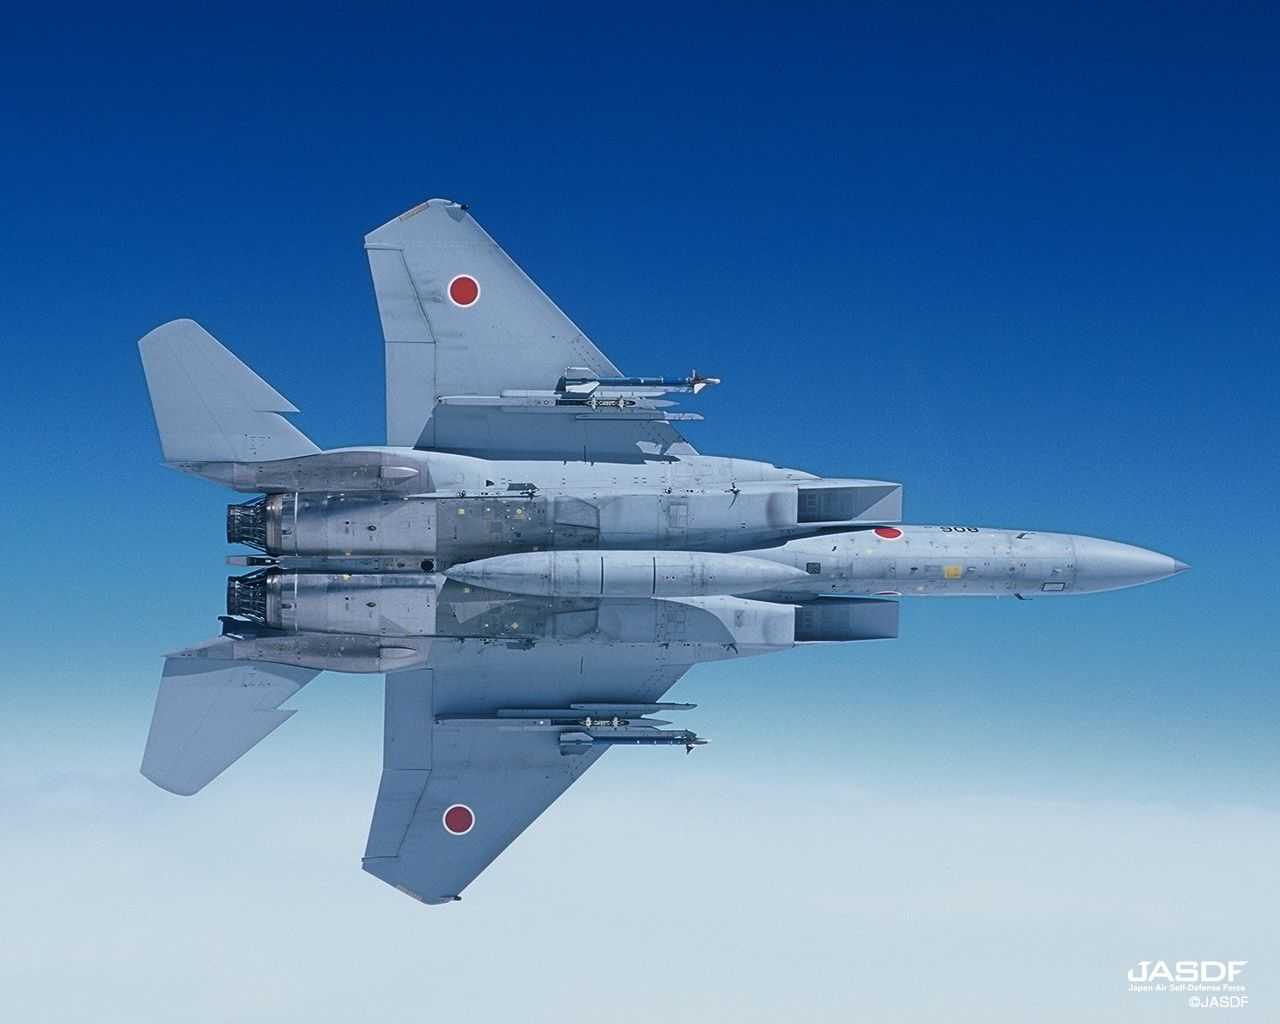 © JASDF - Break d'un F-15J Eagle armé de missiles air-air d'entraînement.